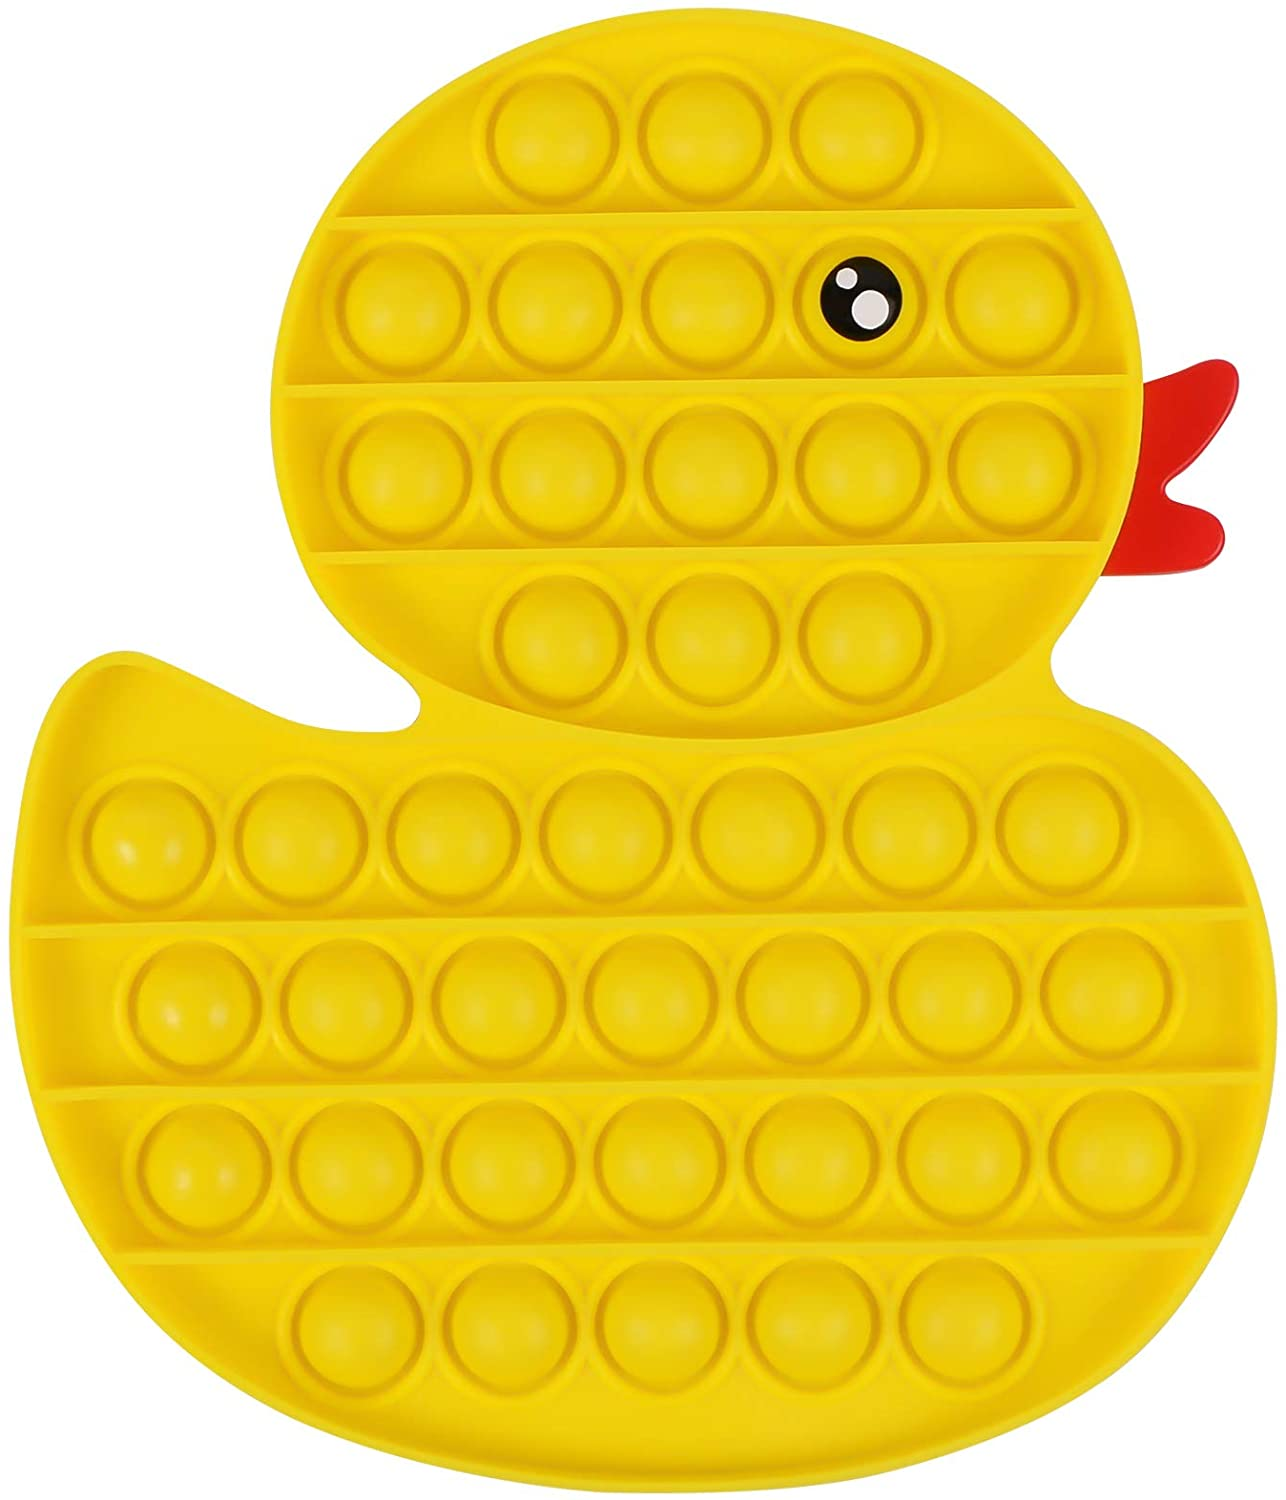 Duck toy(Have eye)